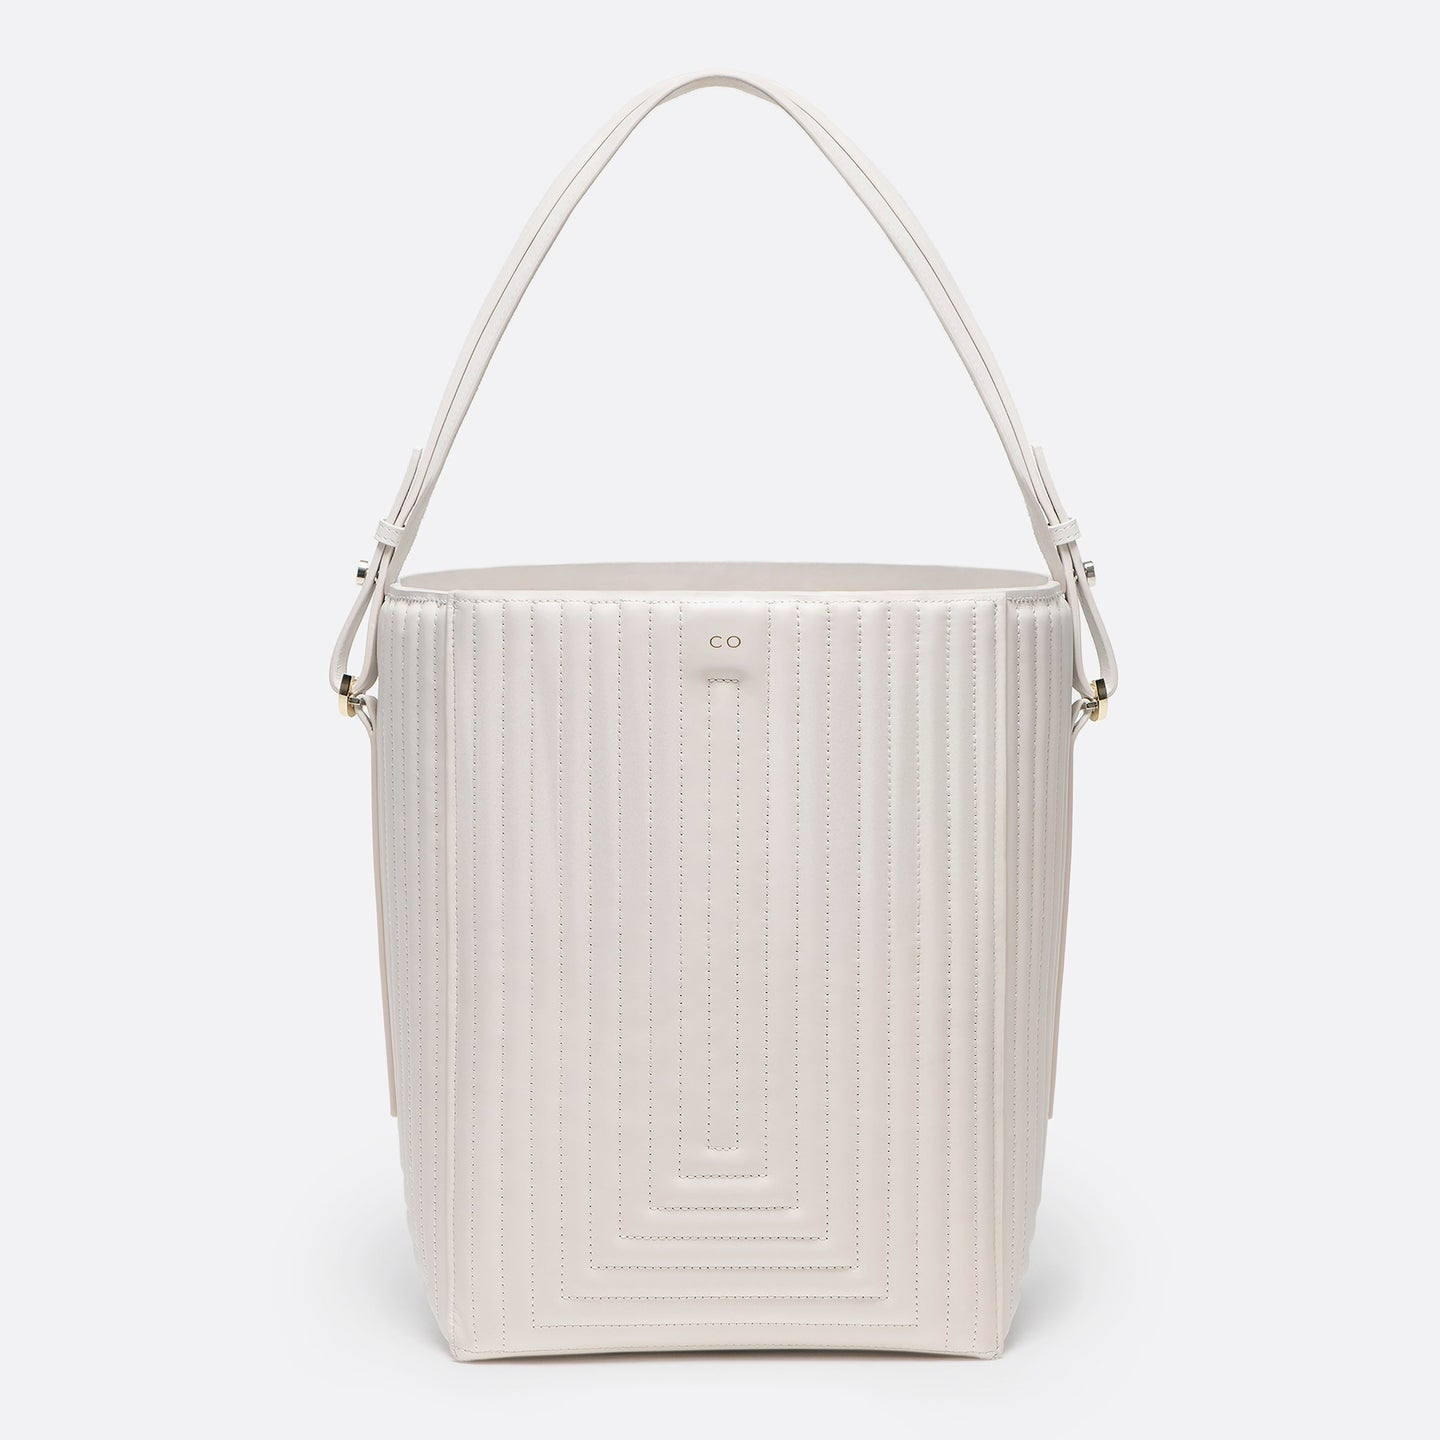 Bucket Bag in ivory matlasse leather - CO